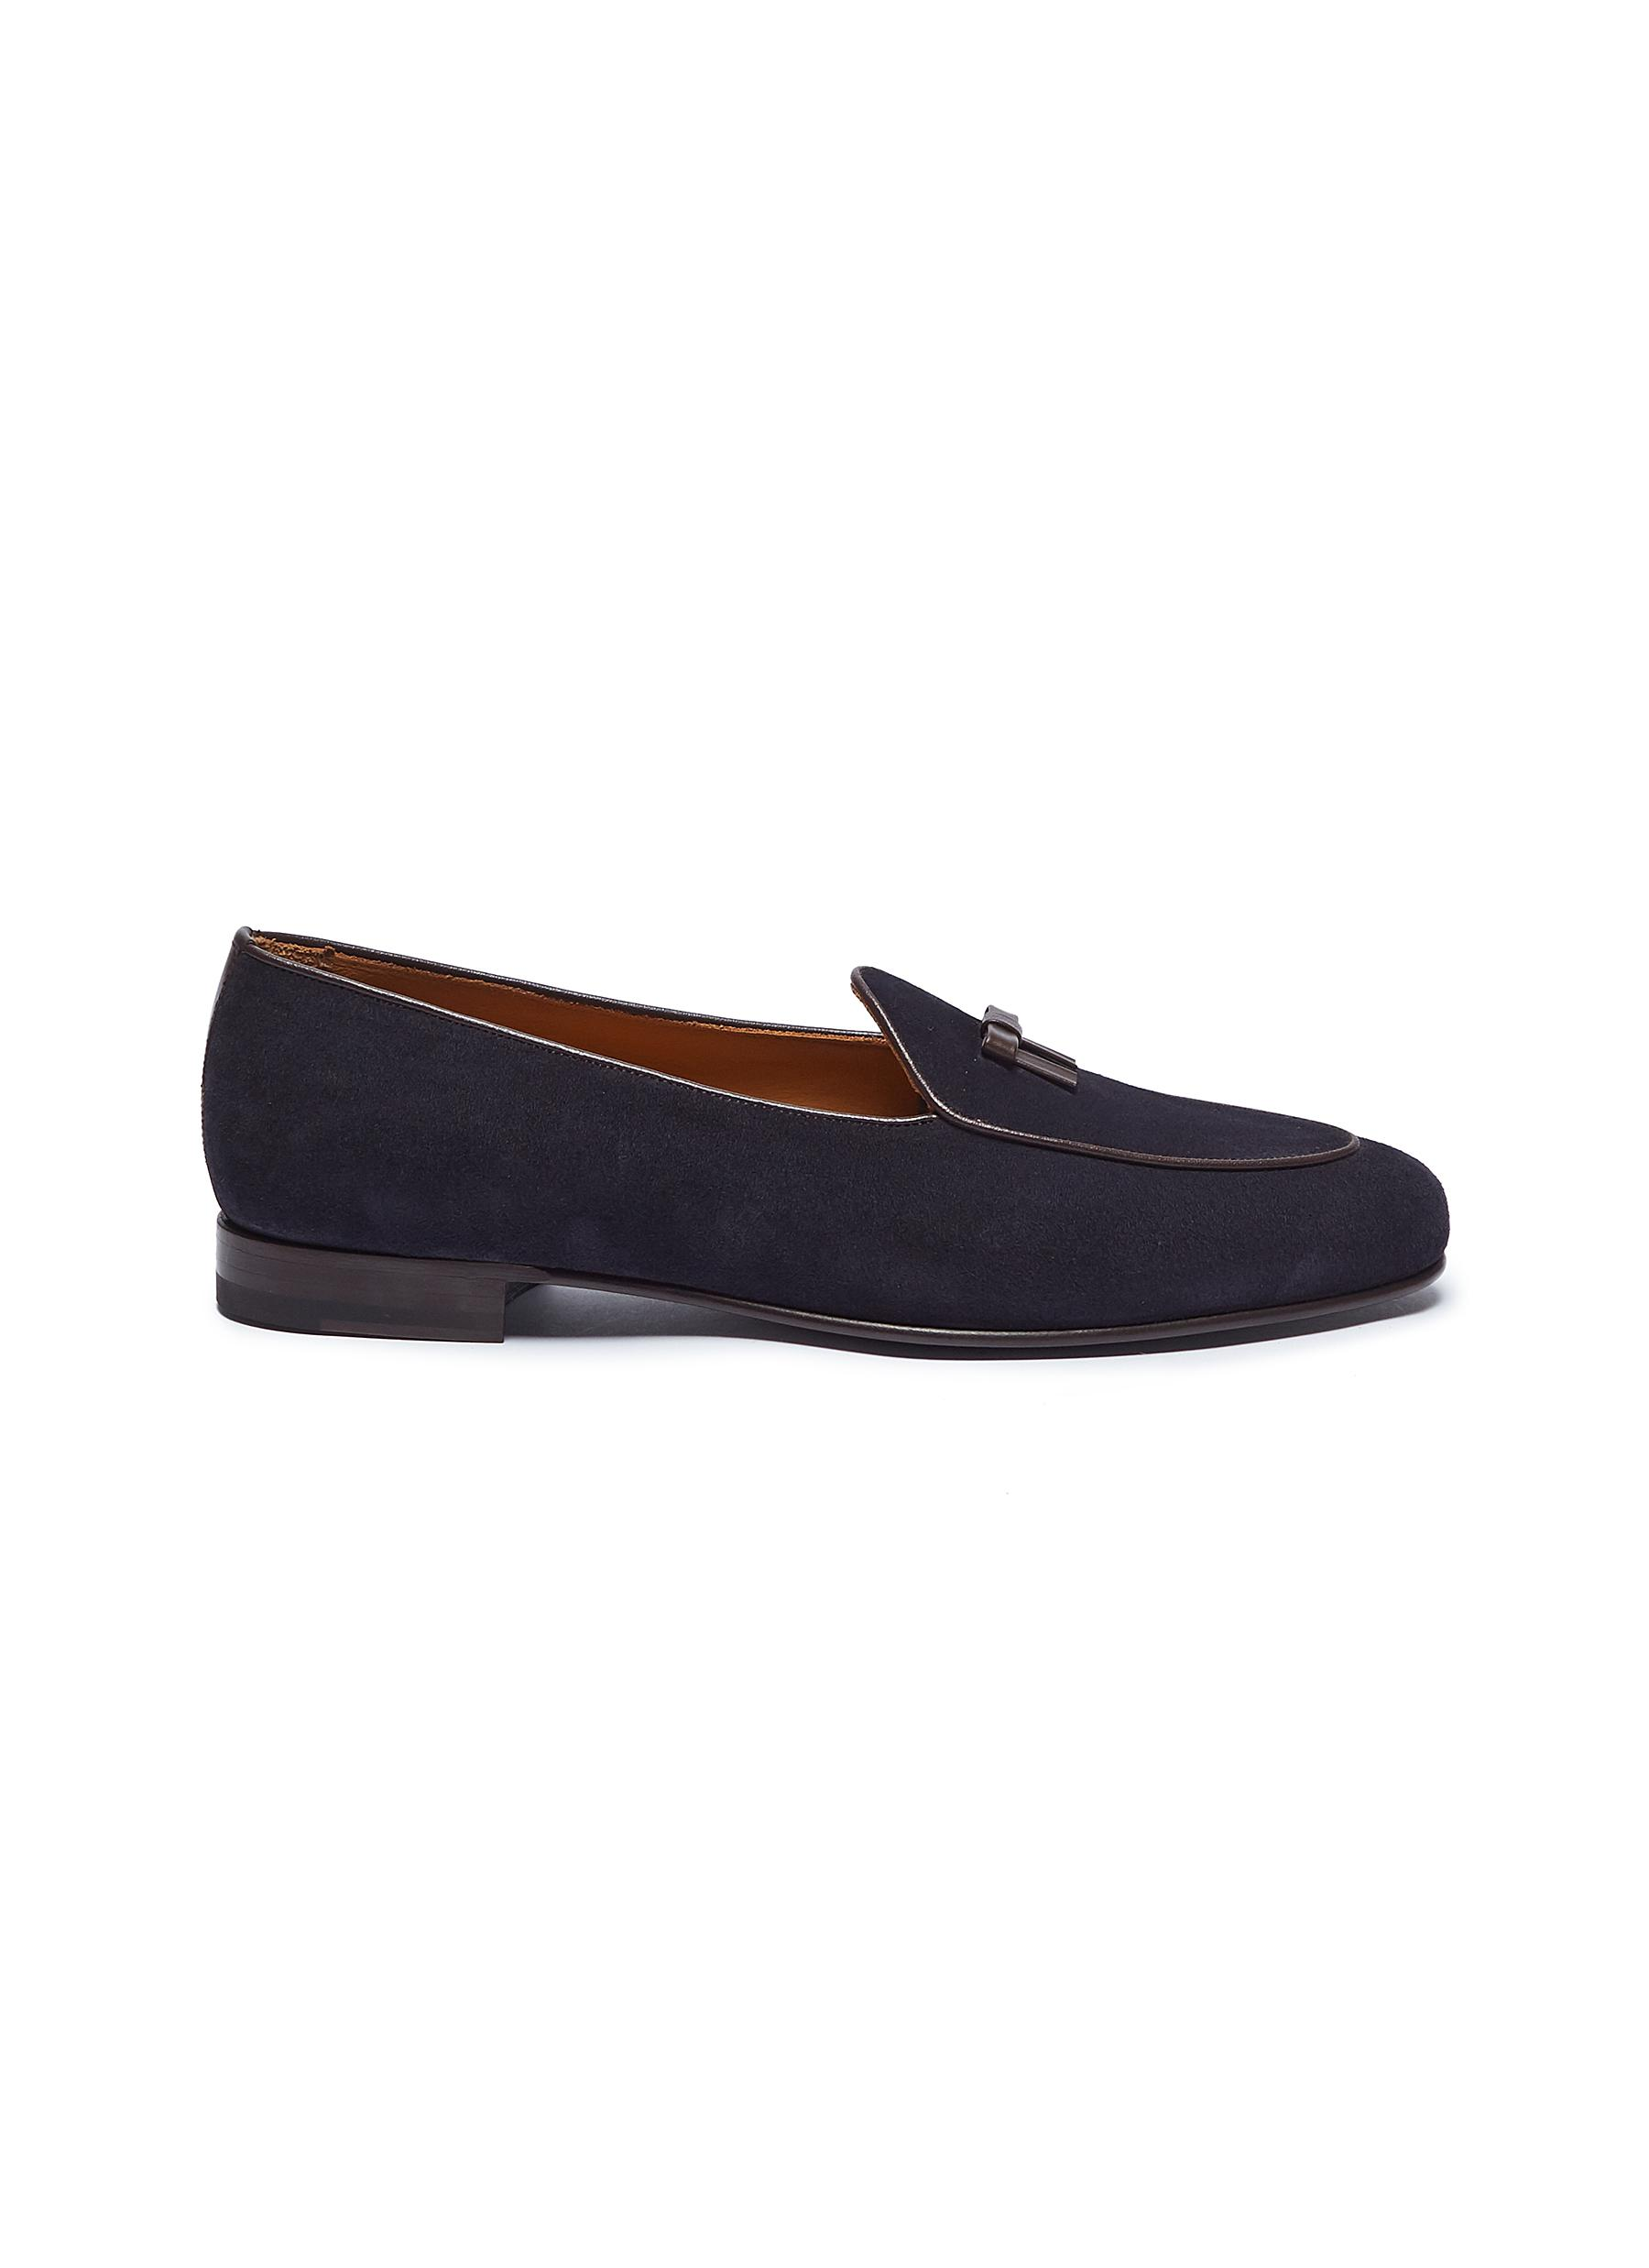 Henry bow suede loafers by Bow-Tie